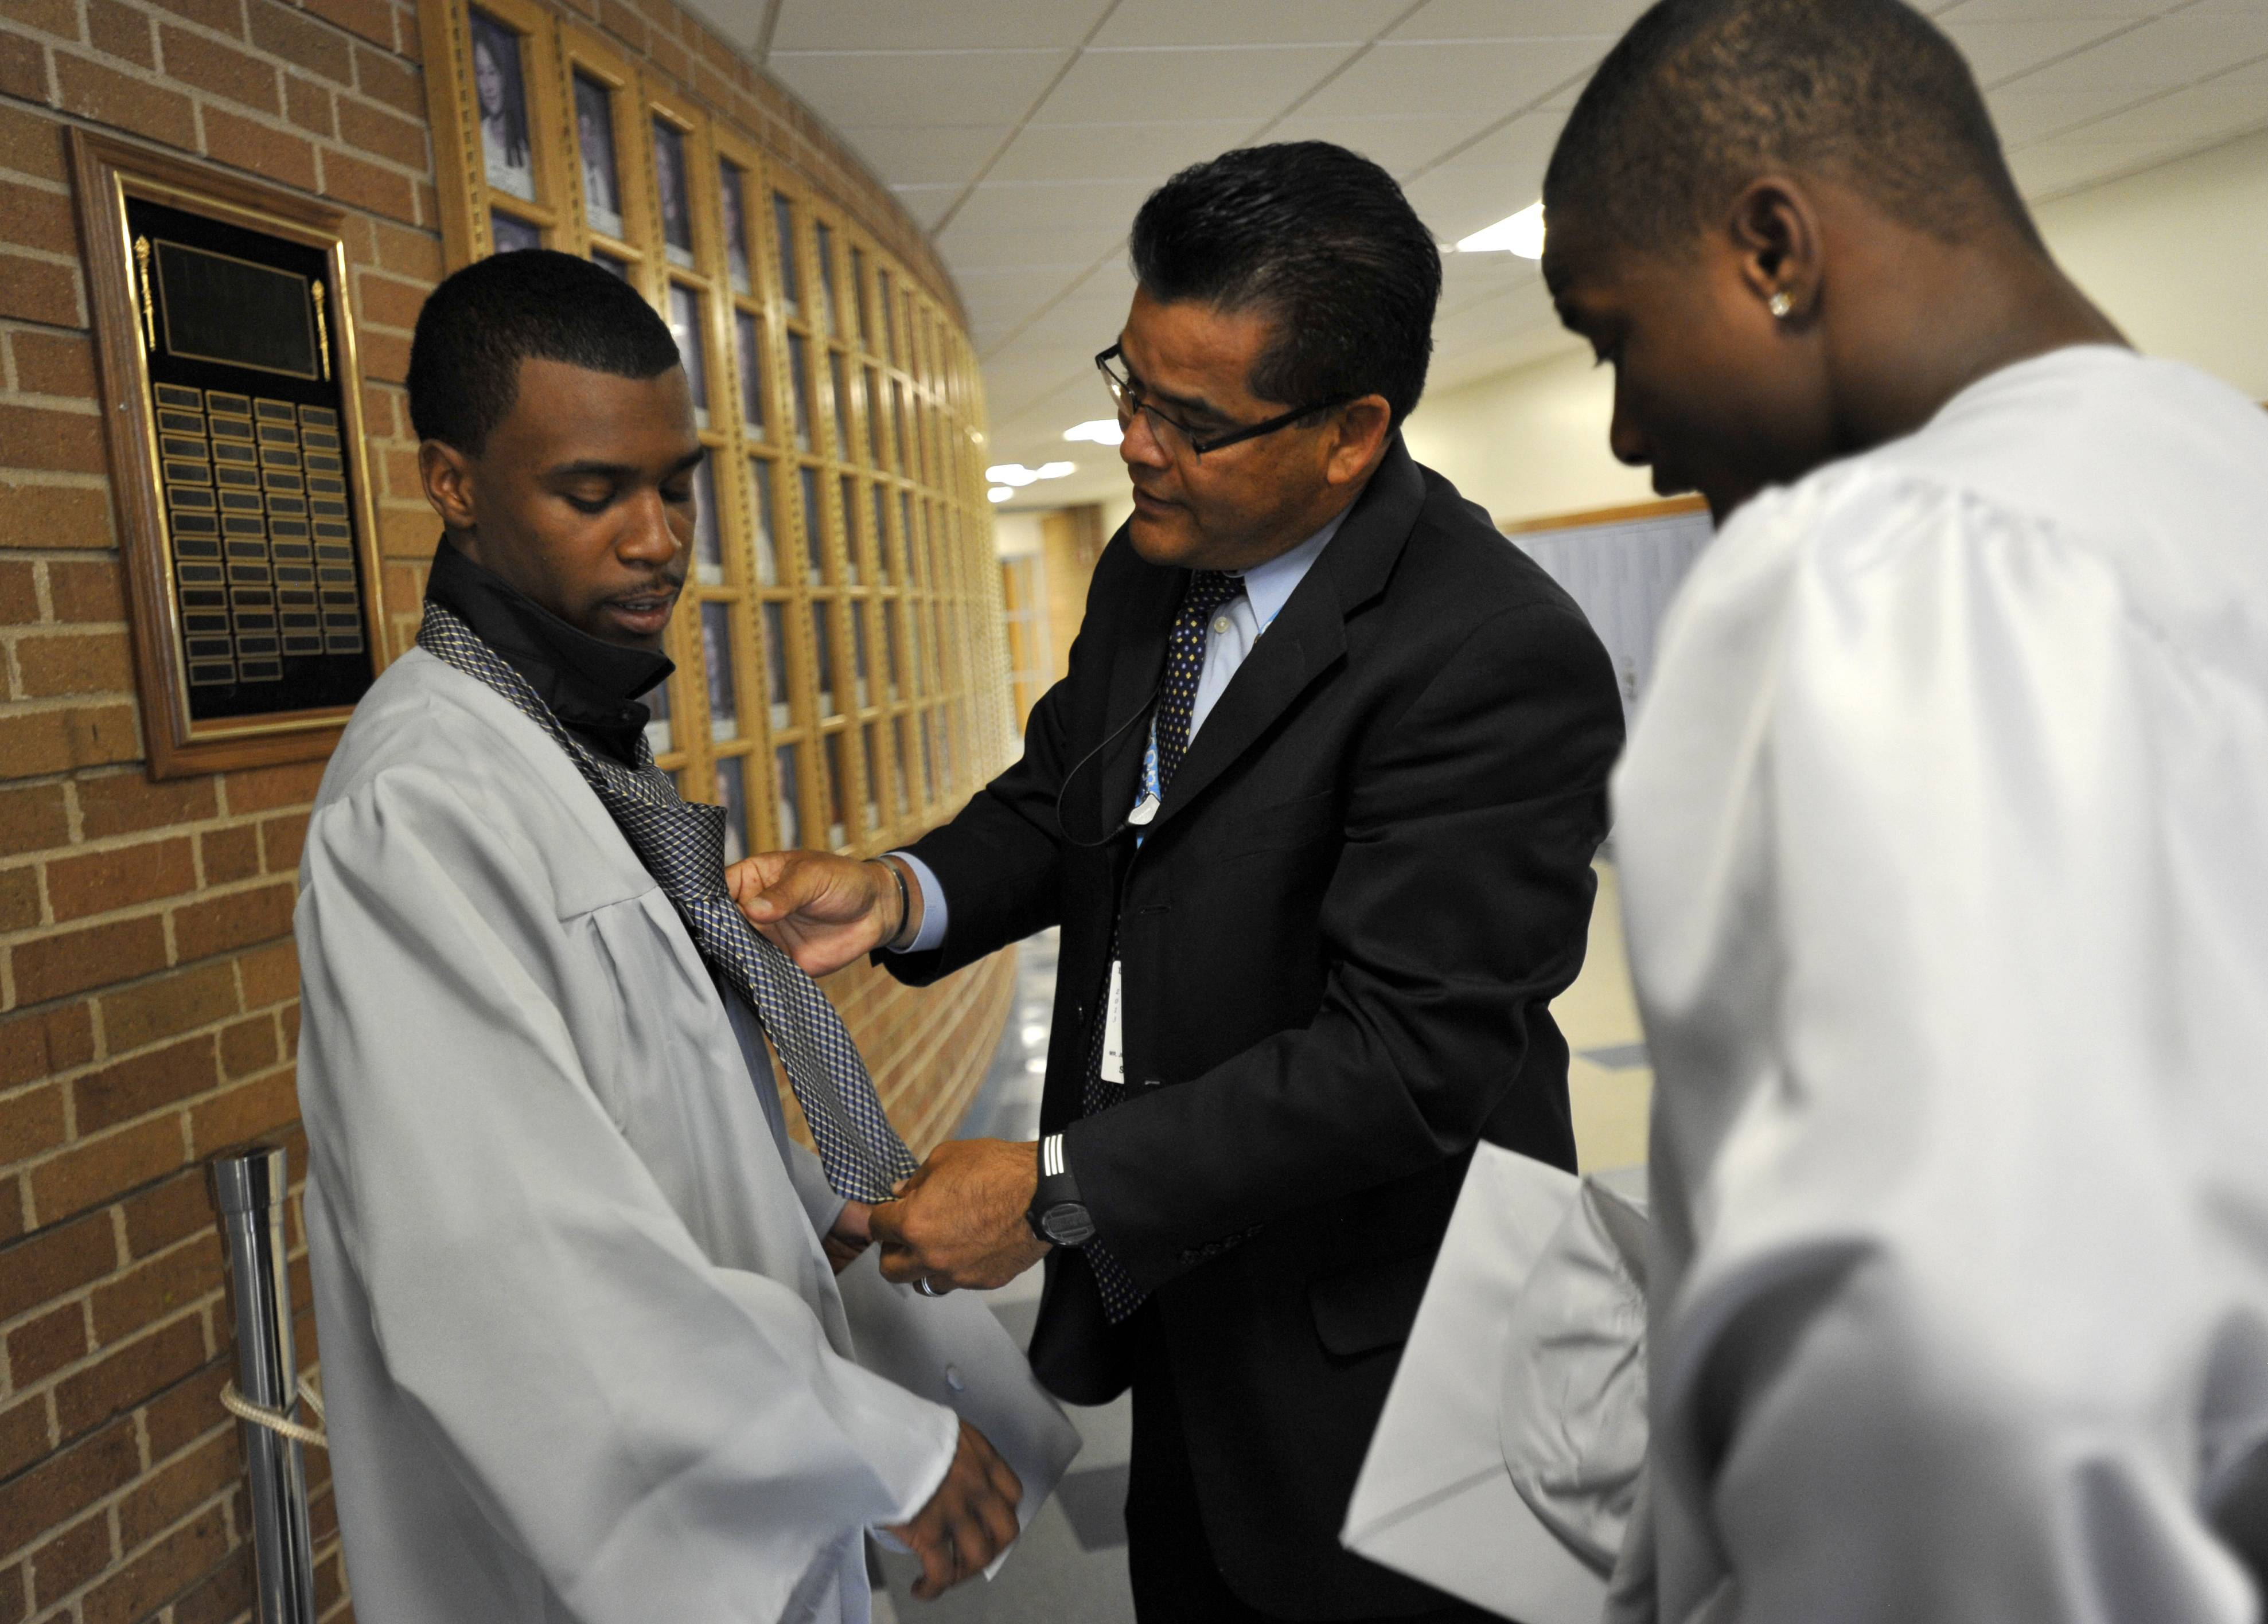 Julio Delreal, Dean of Students (center) helps Marquis Burnett (left) put on a tie before the Willowbrook High School commencement on Sunday, June 8, at the school in Villa Park. Jaquise Williams is on the right.